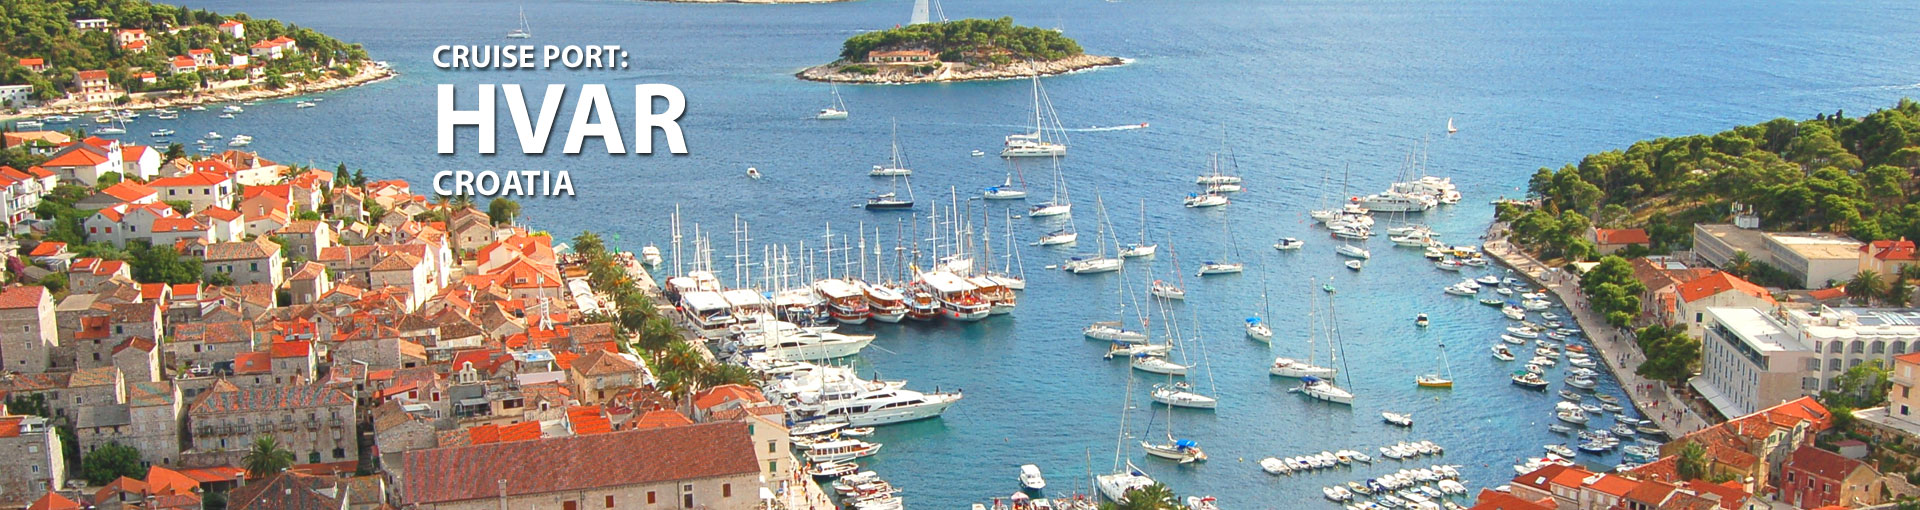 Cruises to Hvar, Croatia